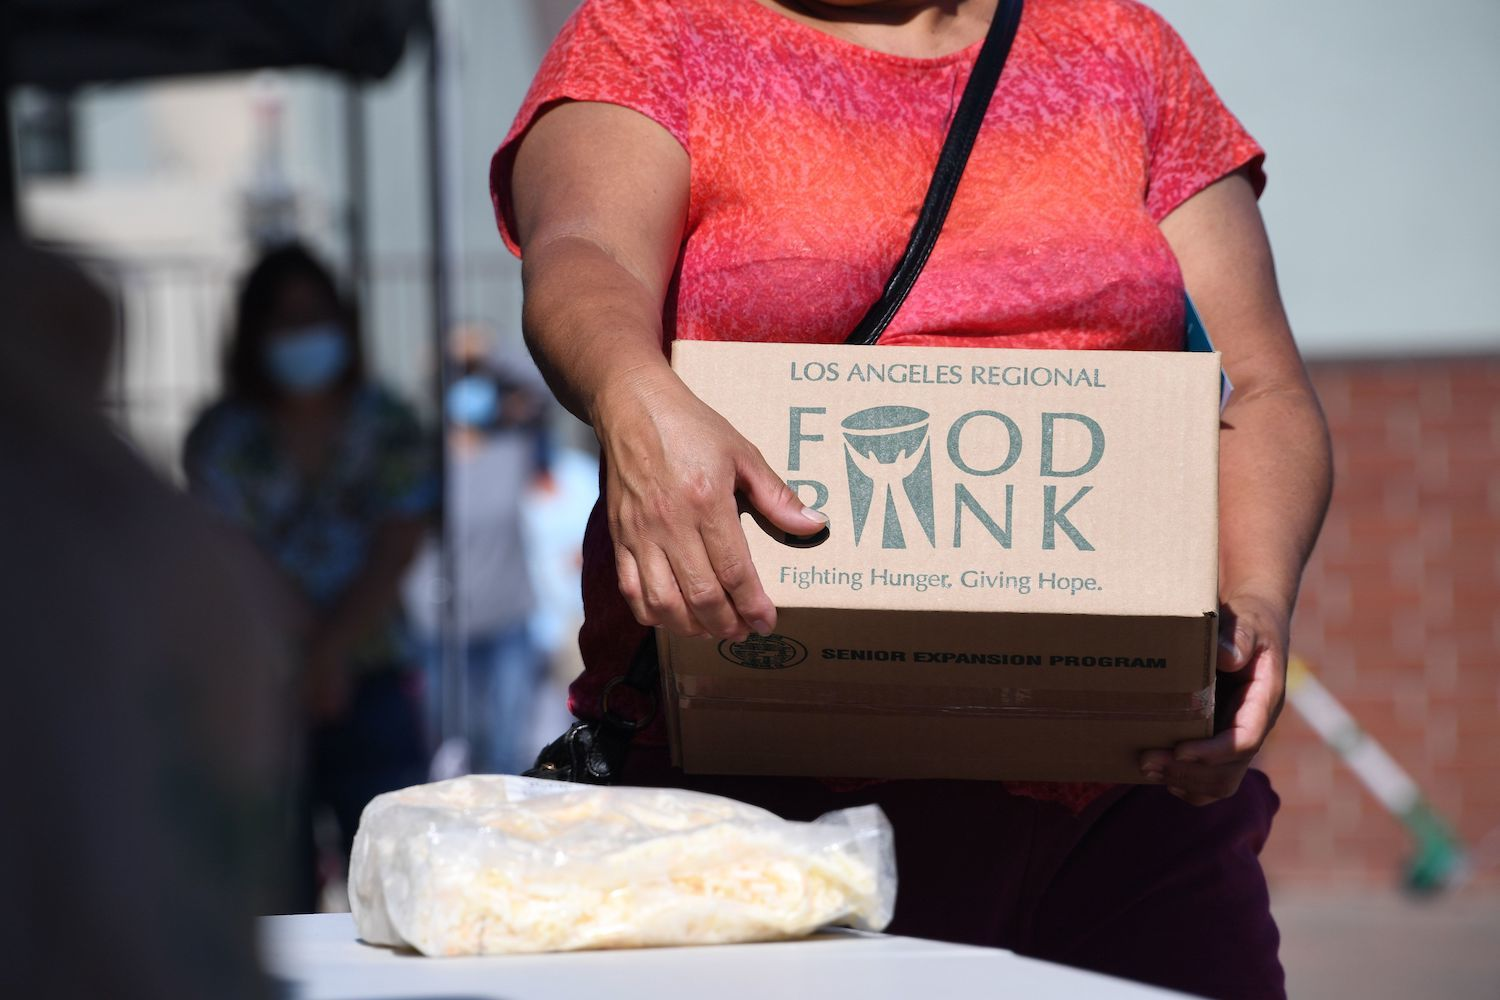 A person collects a box of food at a walk-up food distribution bank for people facing economic hardship or food insecurity, in a church parking lot in Los Angeles, California, August 10, 2020 amid the COVID-19 pandemic. September 2021